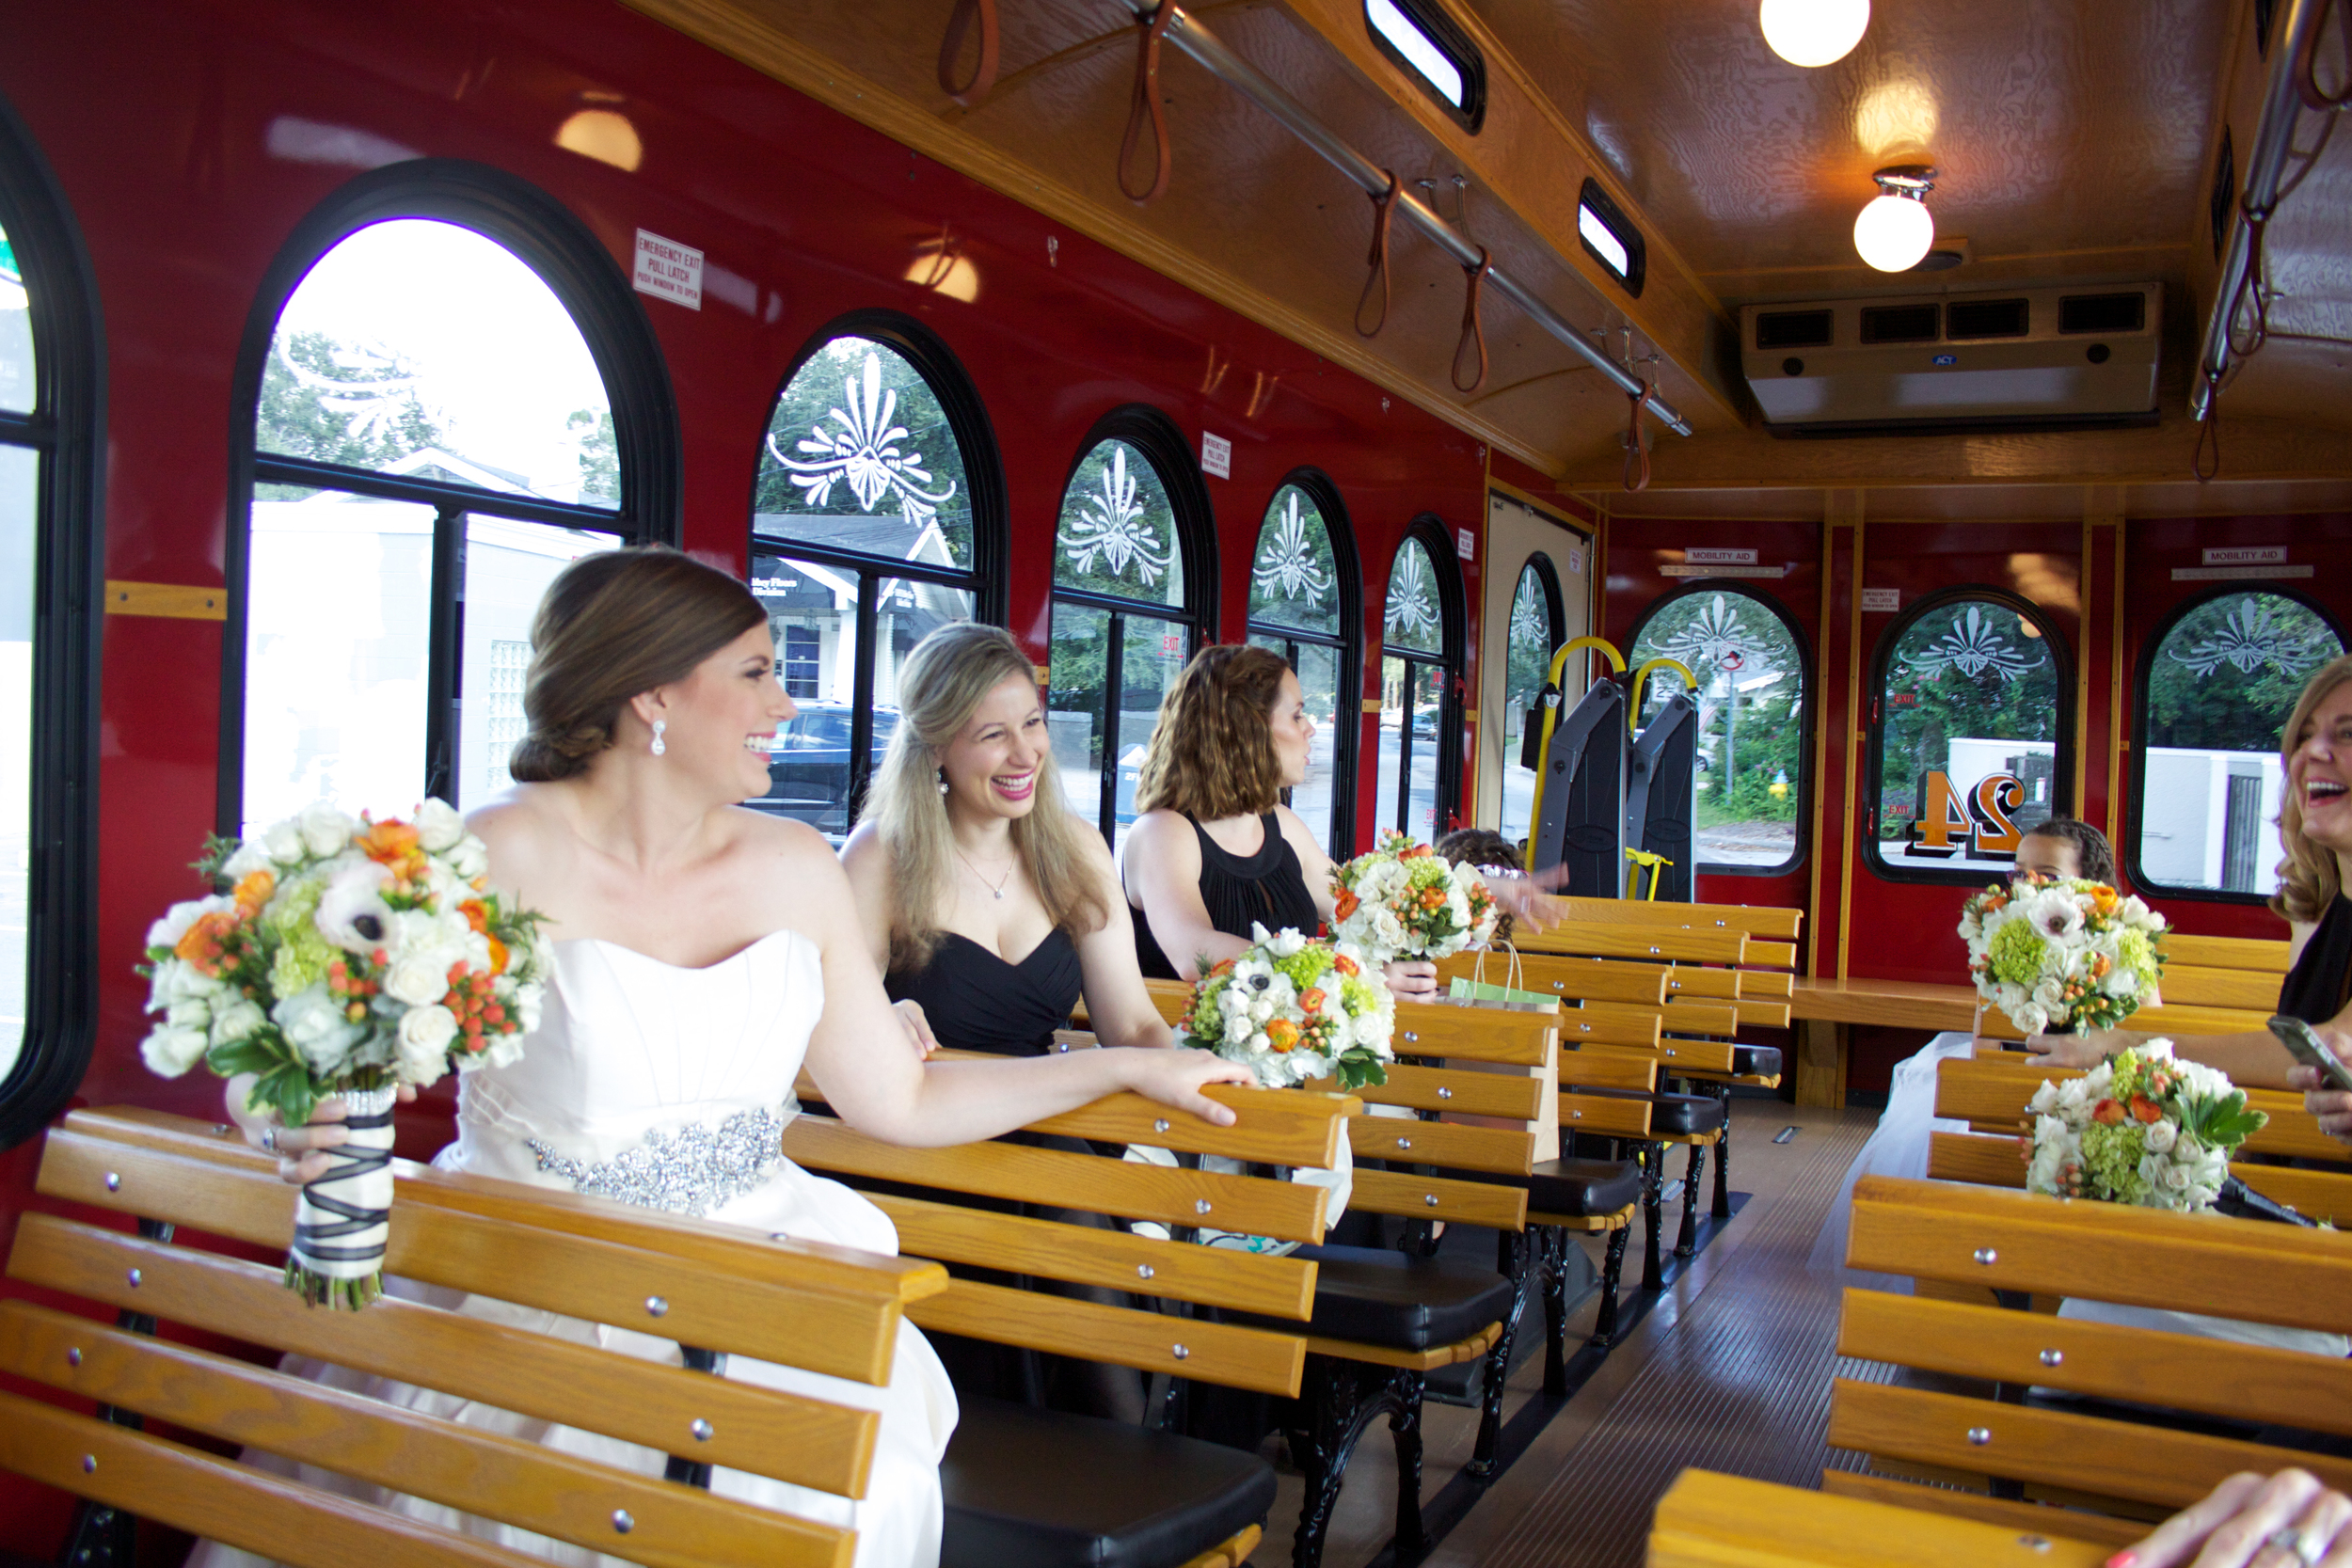 Commuting in style, via a charming trolley car!